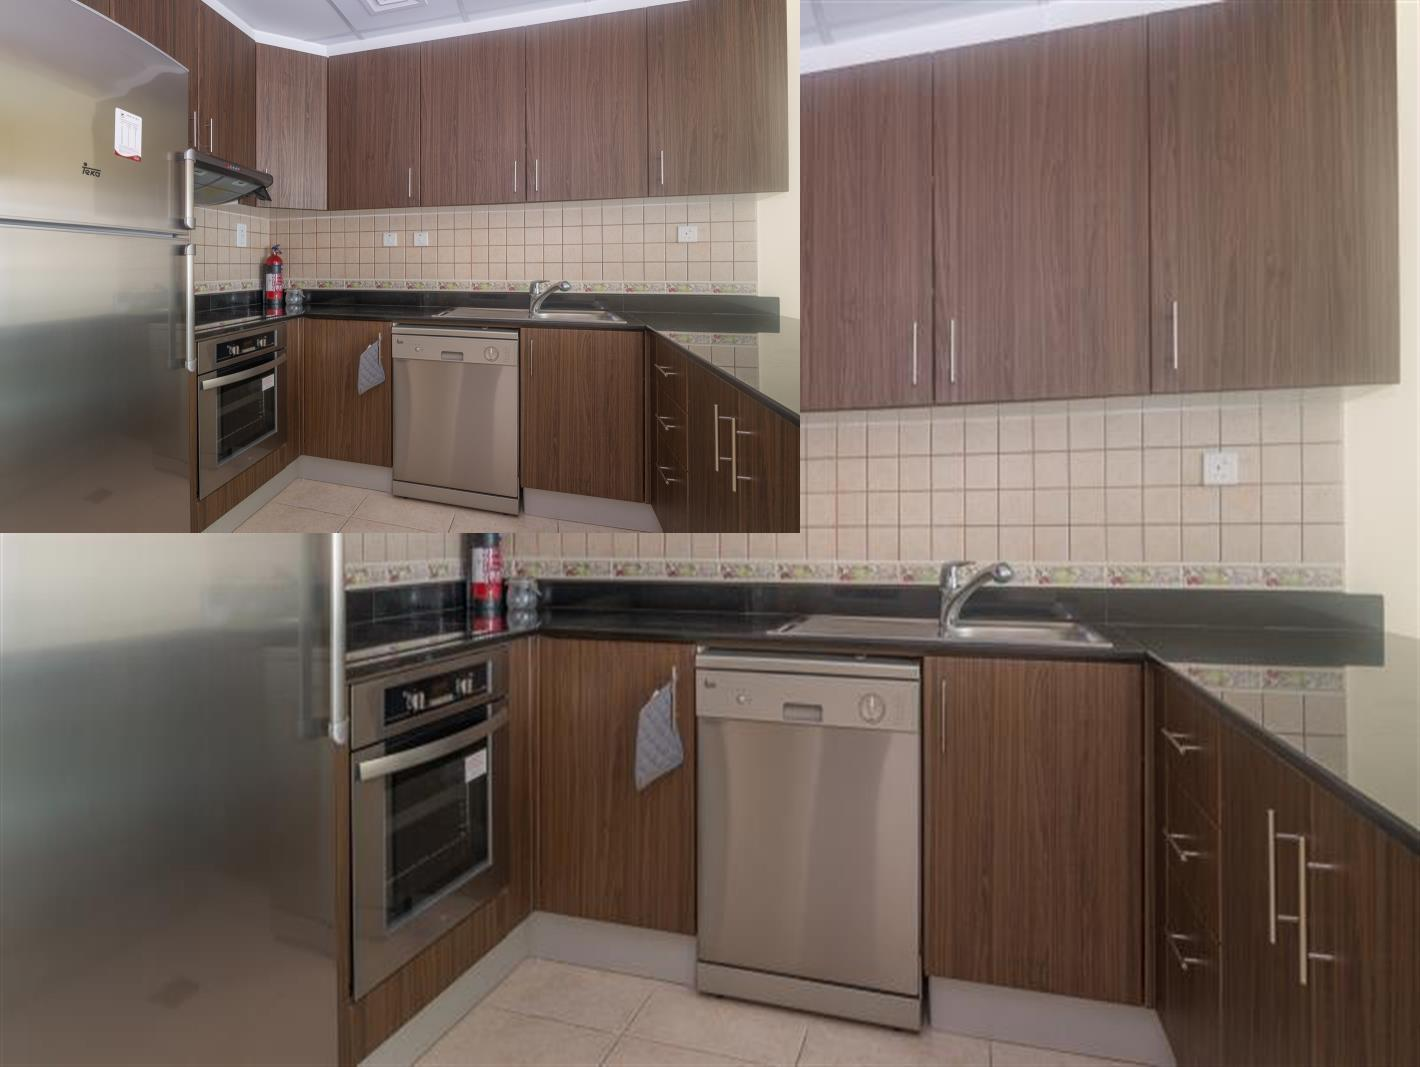 Apartament z 2 łóżkami (2 Bed Apartment)